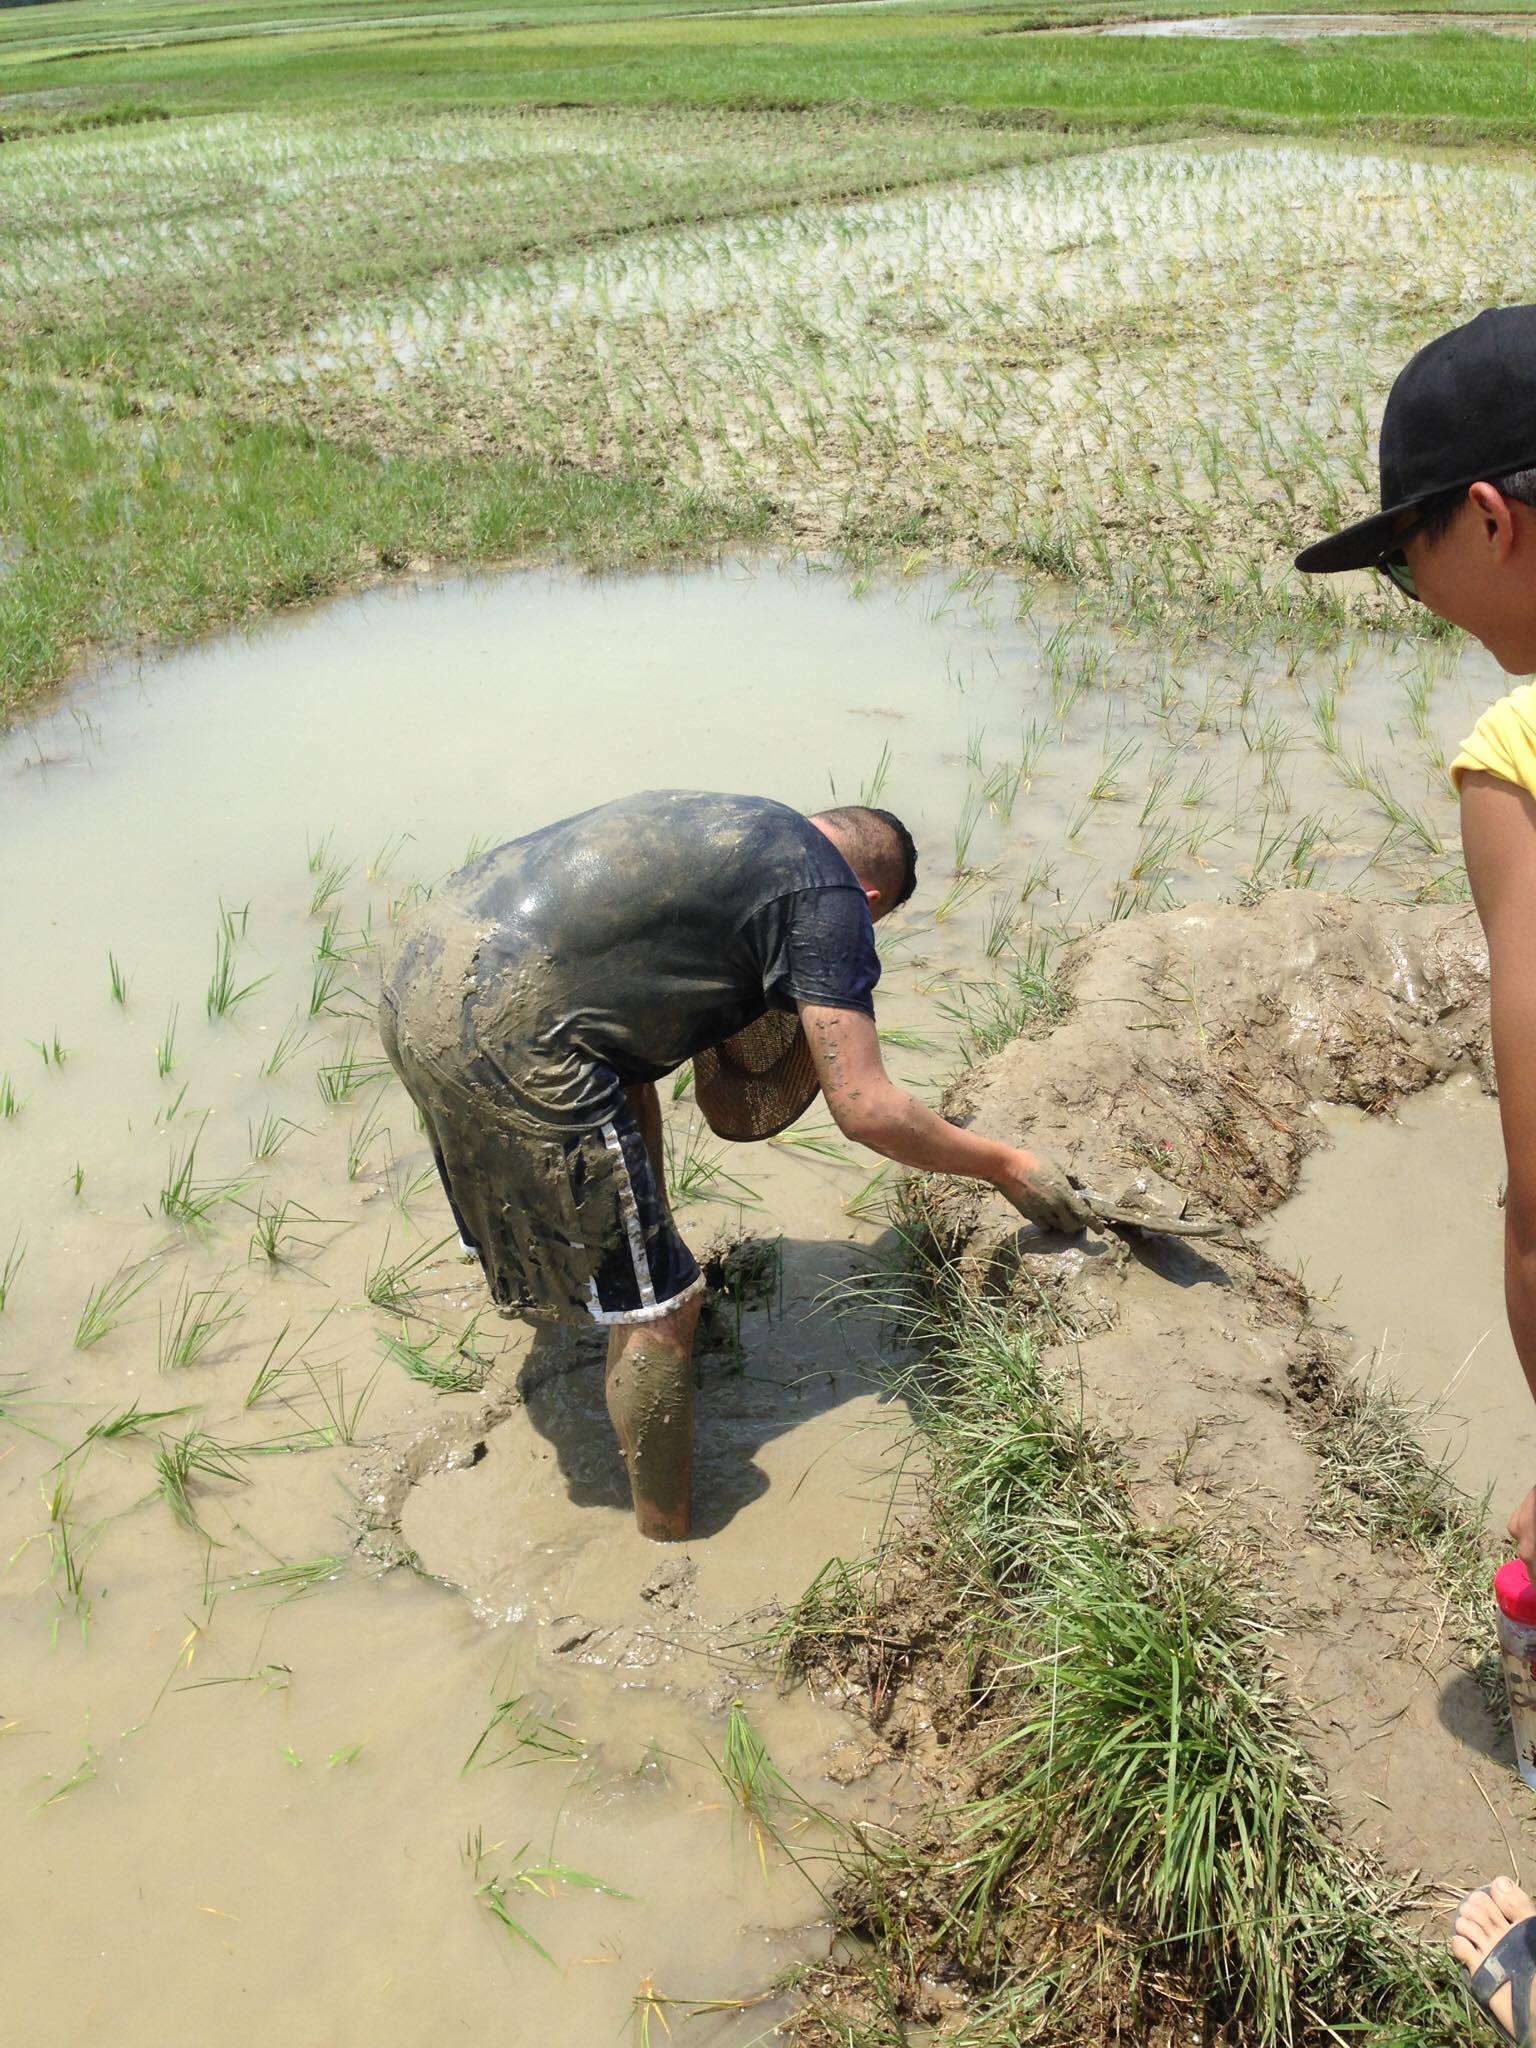 During one of the days, we had a chance to help a student plant rice and spend time with the family. Near the end of our time there, Austin fell into the muddy rice paddy!